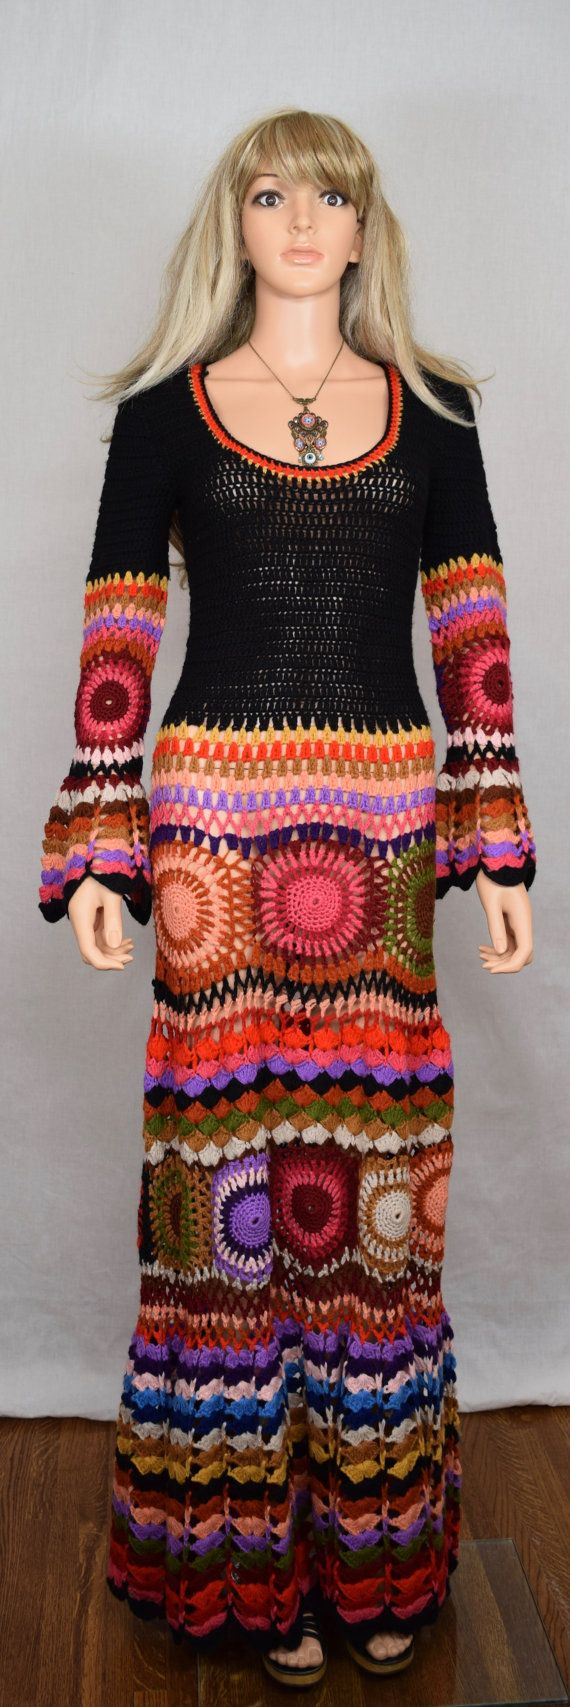 Inspiration only $1320 Vintage 1960's 70's Women's Crocheted Colorful HiPPiE BoHo Woodstock Maxi Dress Size S or M